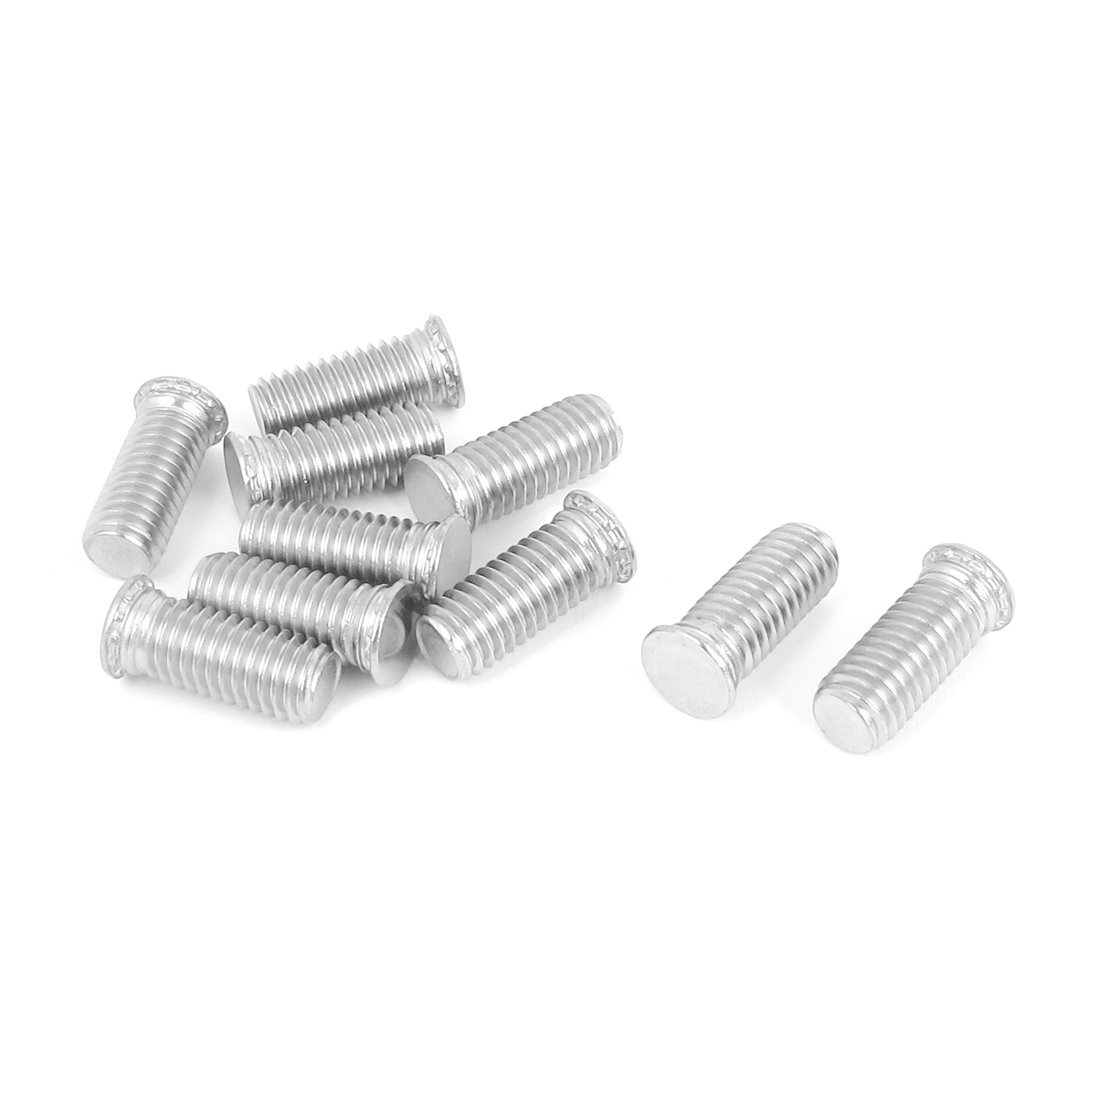 Uxcell a15101500ux0570 Self Clinching Studs M8x20mm Flush head Stainless steel Self Clinching Threaded Studs 10Pcs